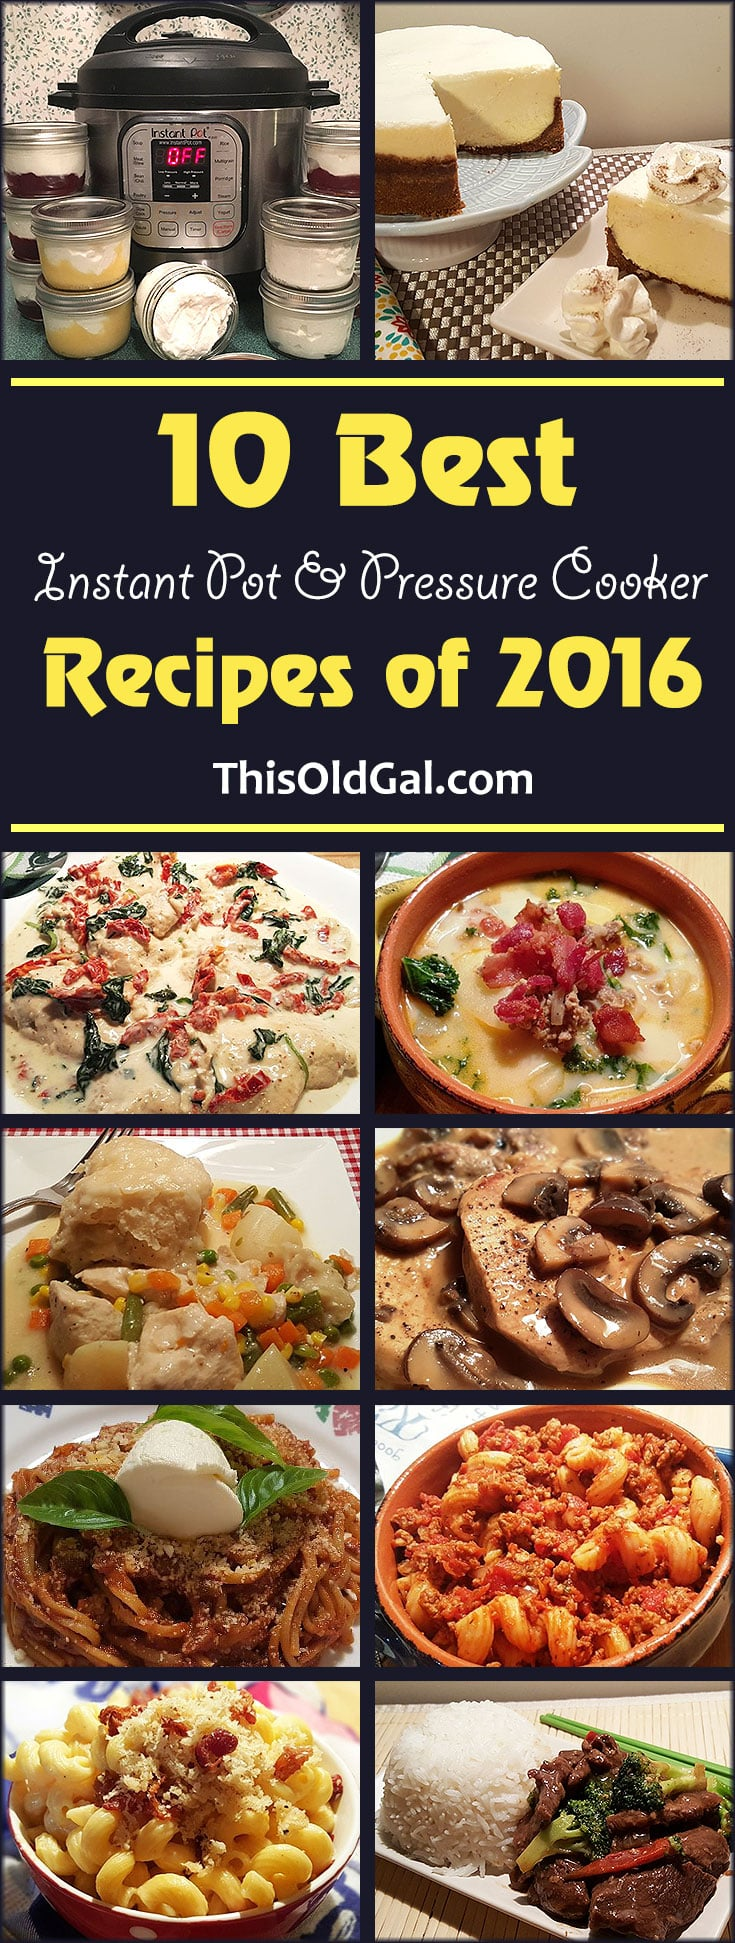 Best Instant Pot and Pressure Cooker Recipes of 2016